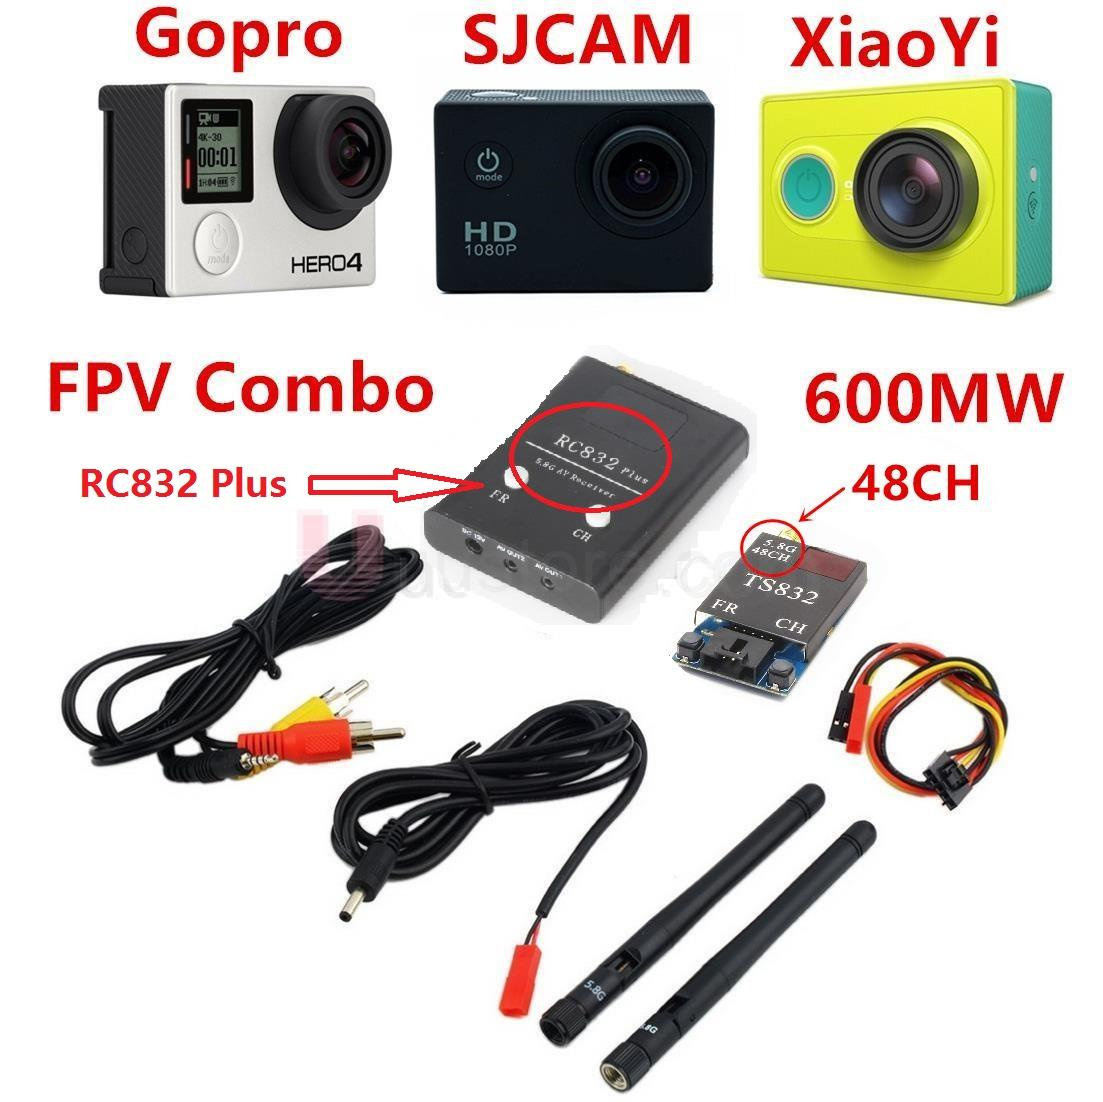 FPV 5 8Ghz 600mW 48CH Wireless AV A V transmitter receiver TS832 RC832 Plus Tx Rx